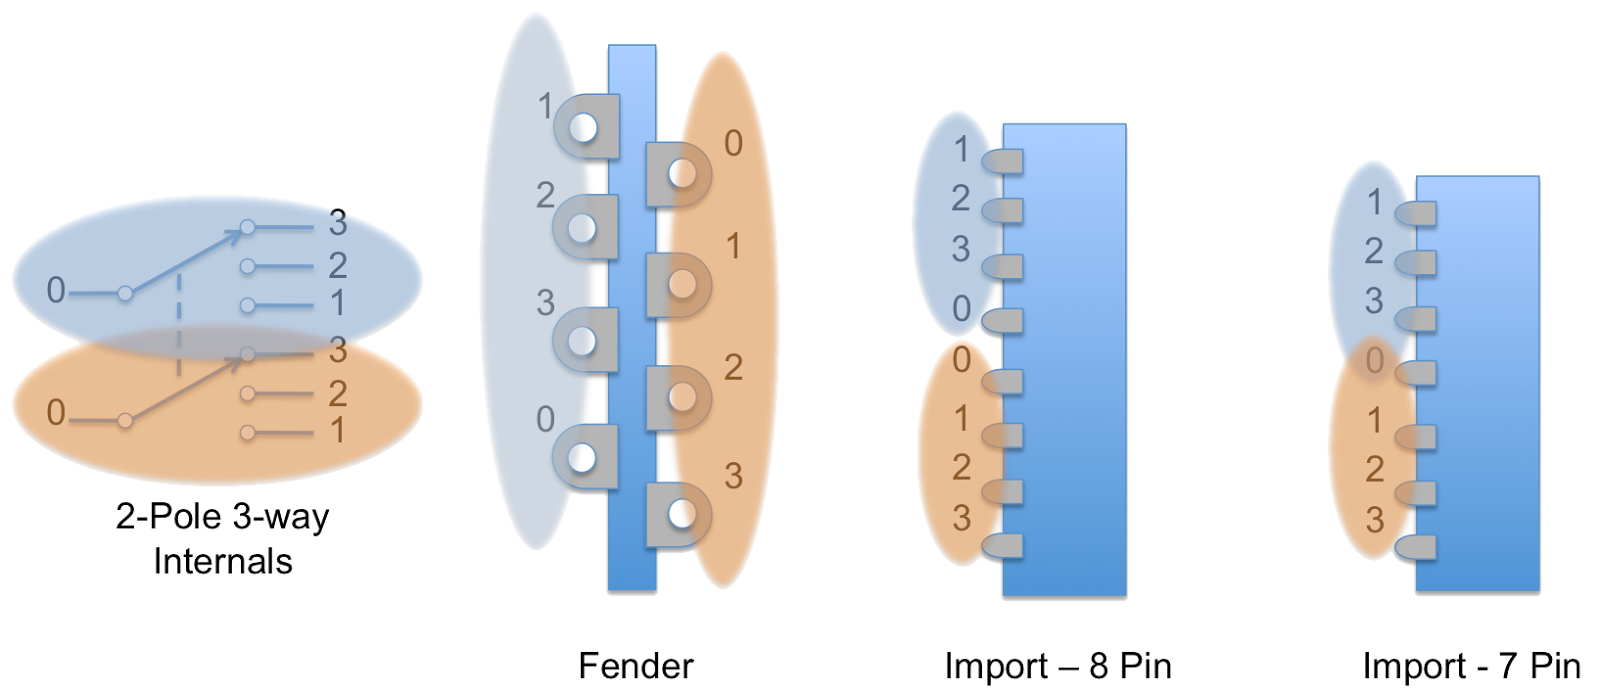 medium resolution of in terms of the fender standard 5 way each set of 4 pins on either side represents a single 3 way pole for the 8 pin import switches the leftmost 4 pins